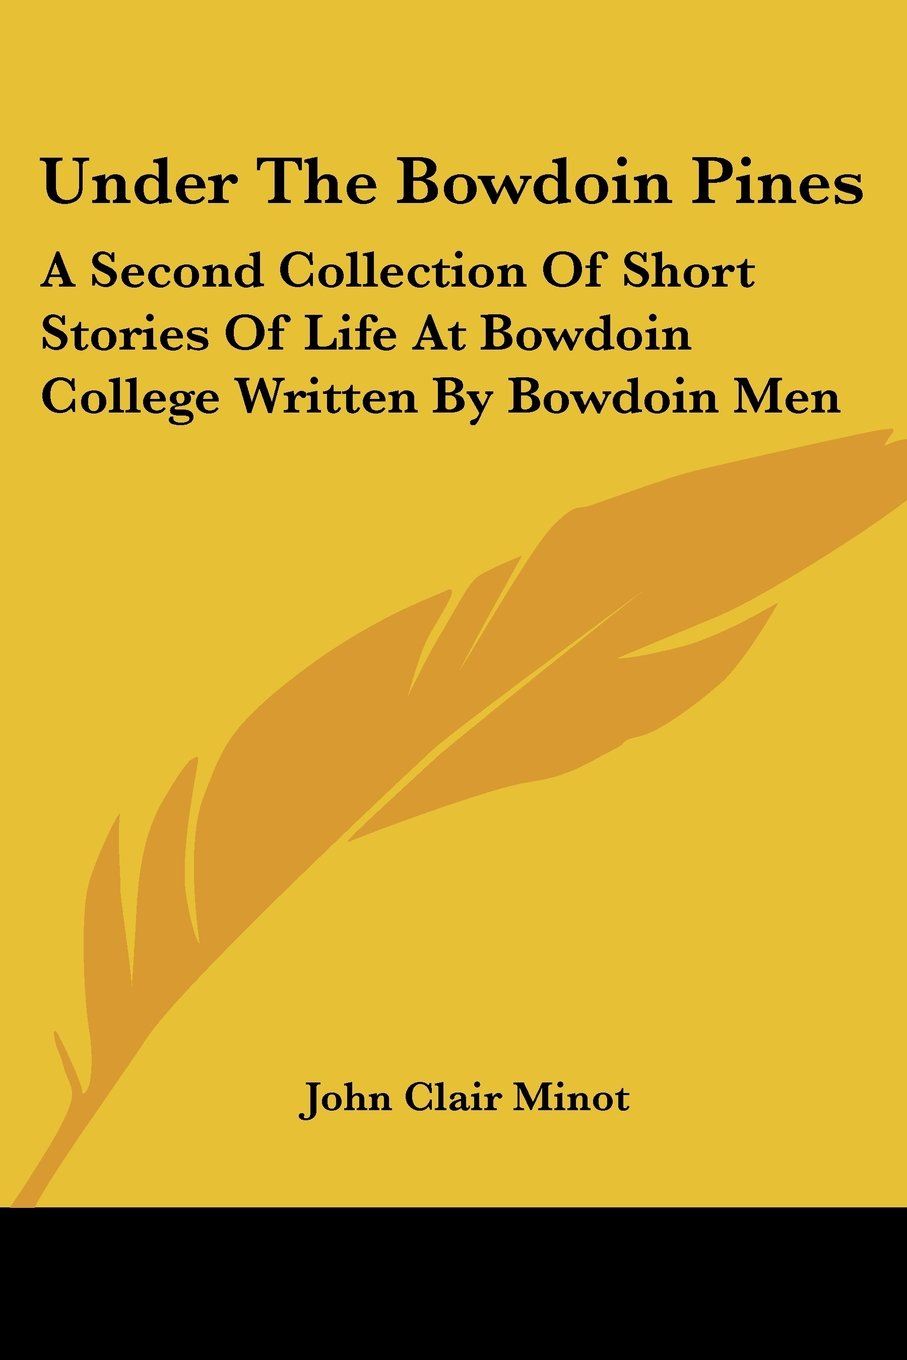 Read Online Under The Bowdoin Pines: A Second Collection Of Short Stories Of Life At Bowdoin College Written By Bowdoin Men pdf